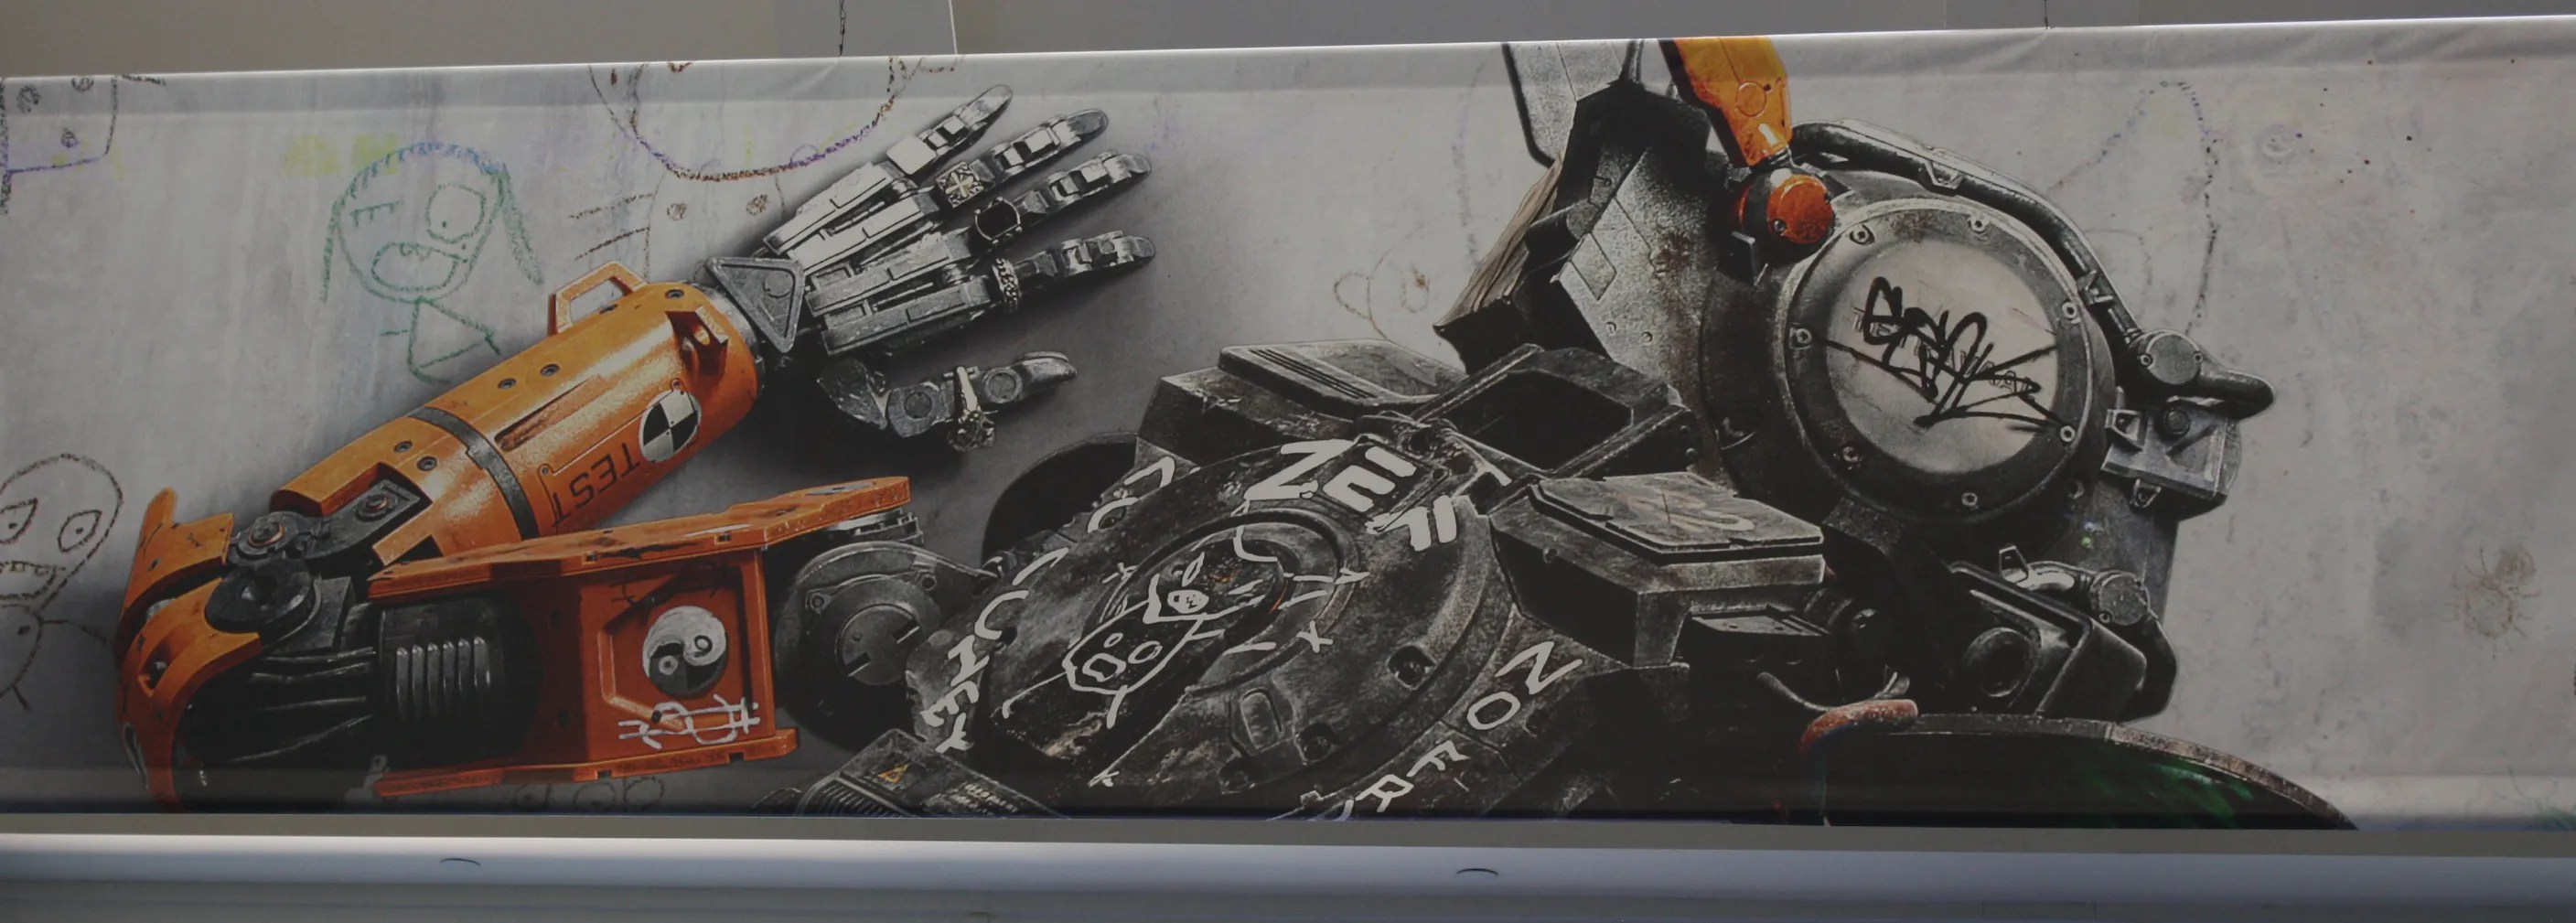 Chappie Poster Revealed At Comic Con Sci Fi Comedy Stars